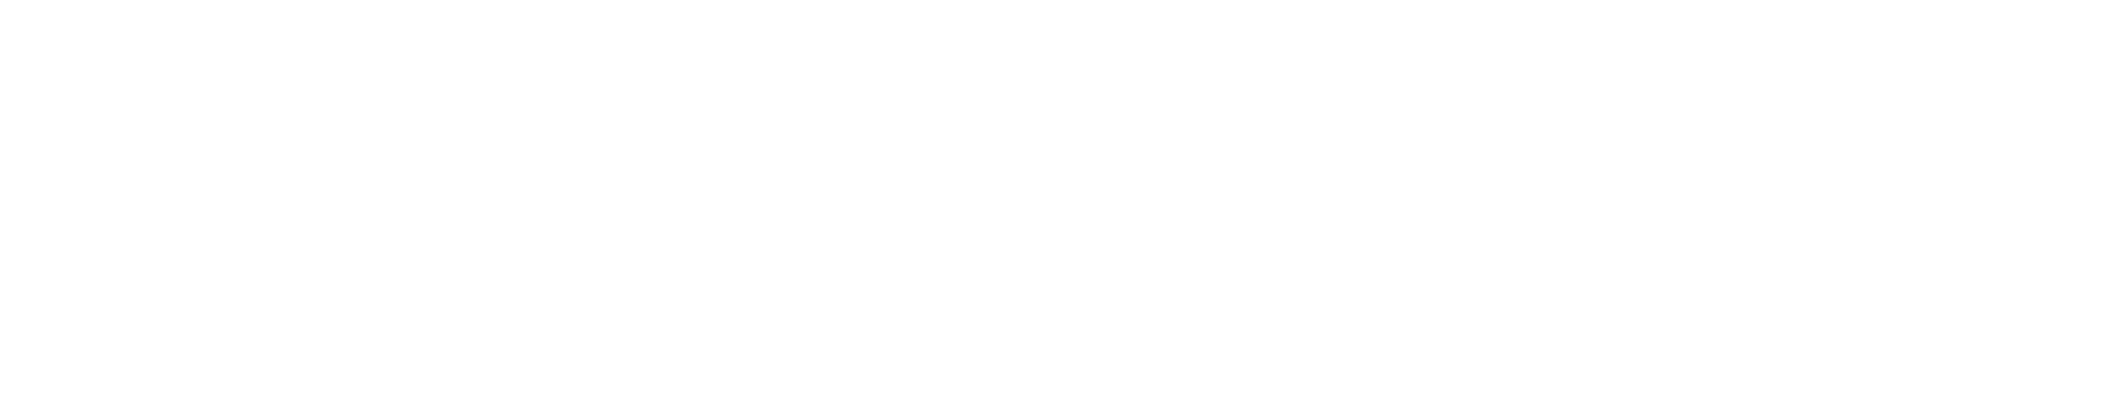 Dannible and McKee LLP Logo